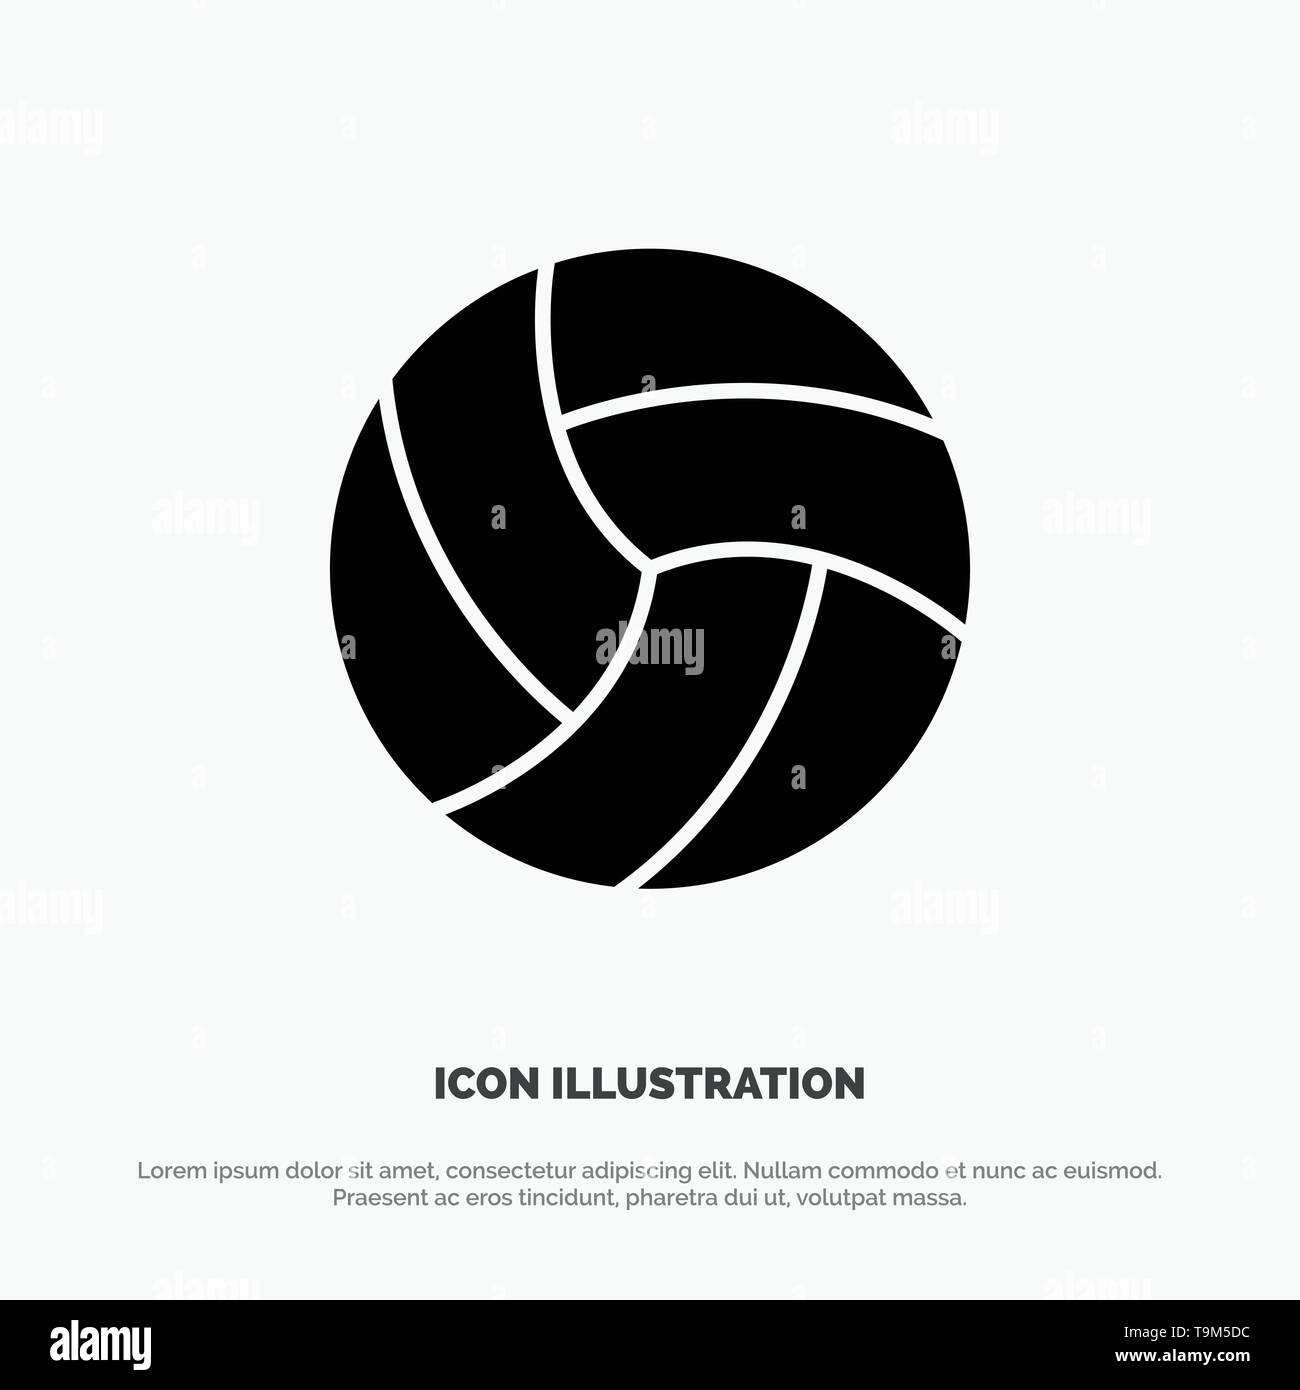 Ball, Volley, Volleyball, Sport solid Glyph Icon vector - Stock Image